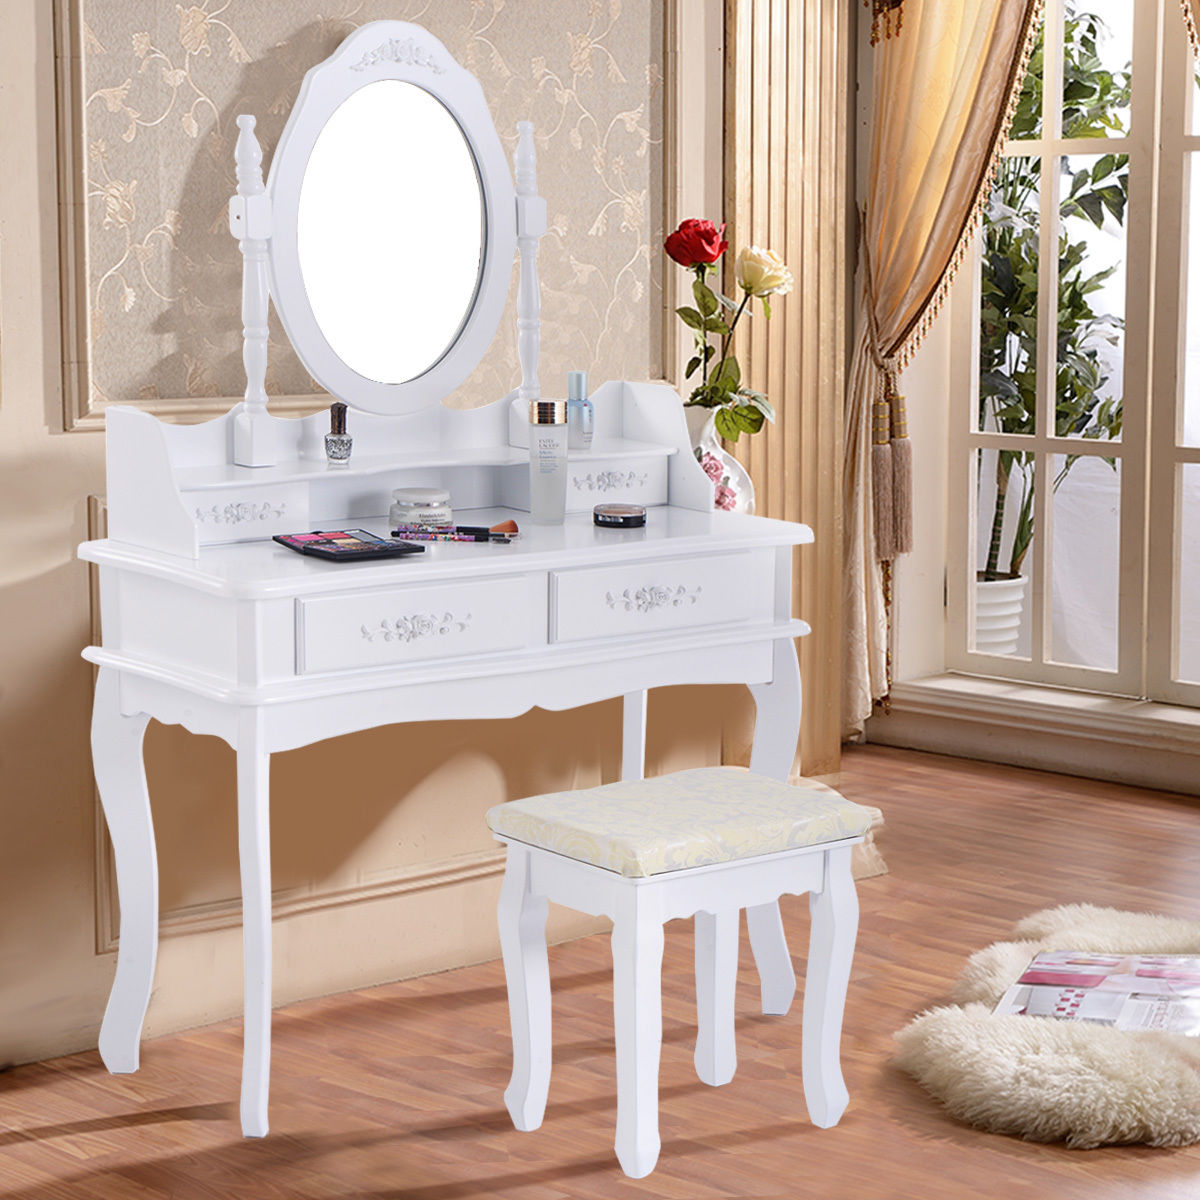 Buy giantex white vanity table jewelry for Vanity table set